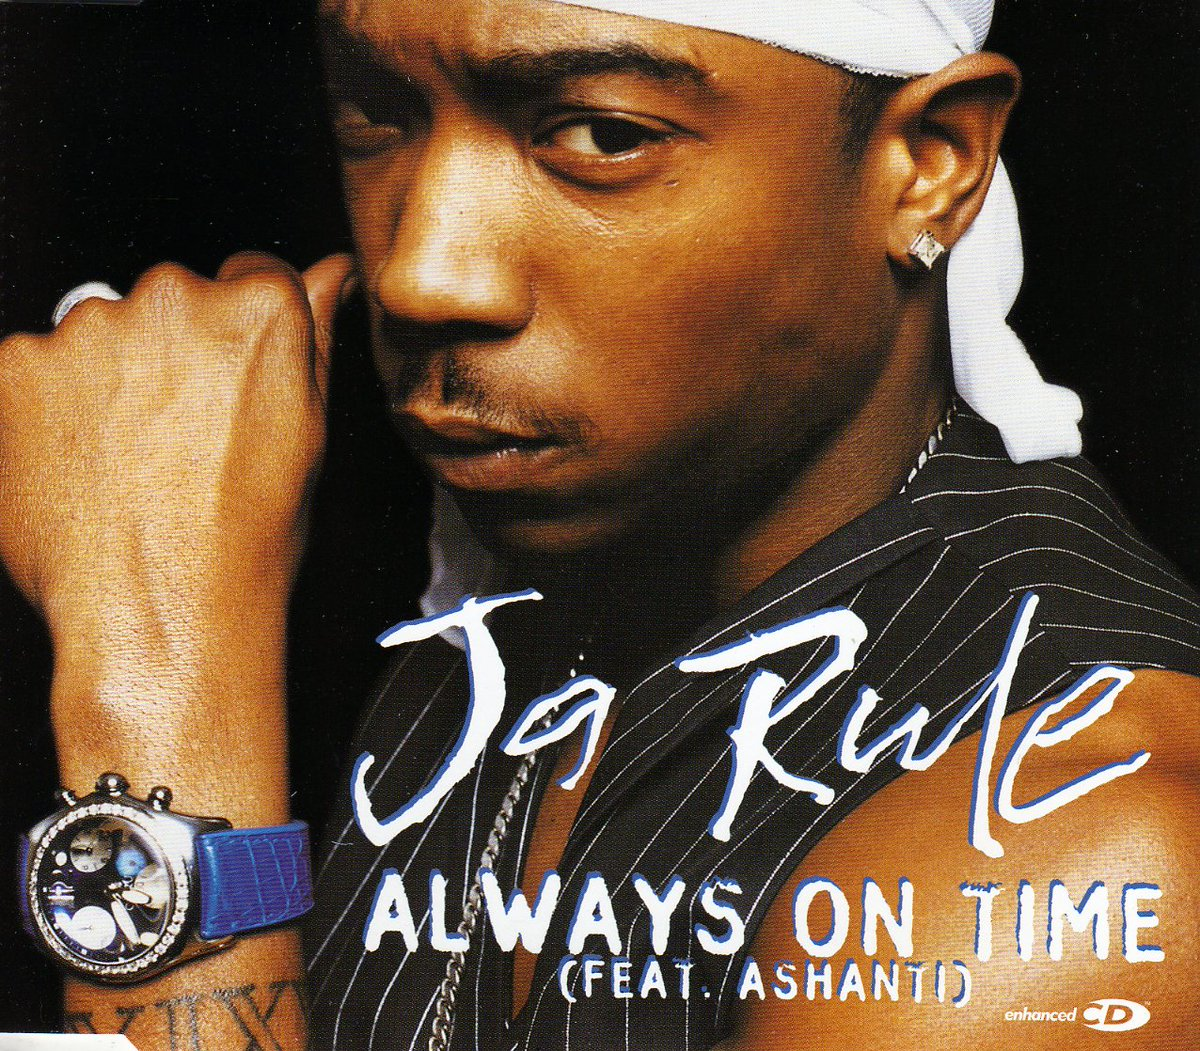 #NP #alwaysontime || @jarule @ashanti    on the #RoadShow with @danielthebigone  #TheBIGOne   #OldSchoolWednesday #CoolMusic  Listen live: https://t.co/JVTMuVp3BX https://t.co/gmutmncP4B